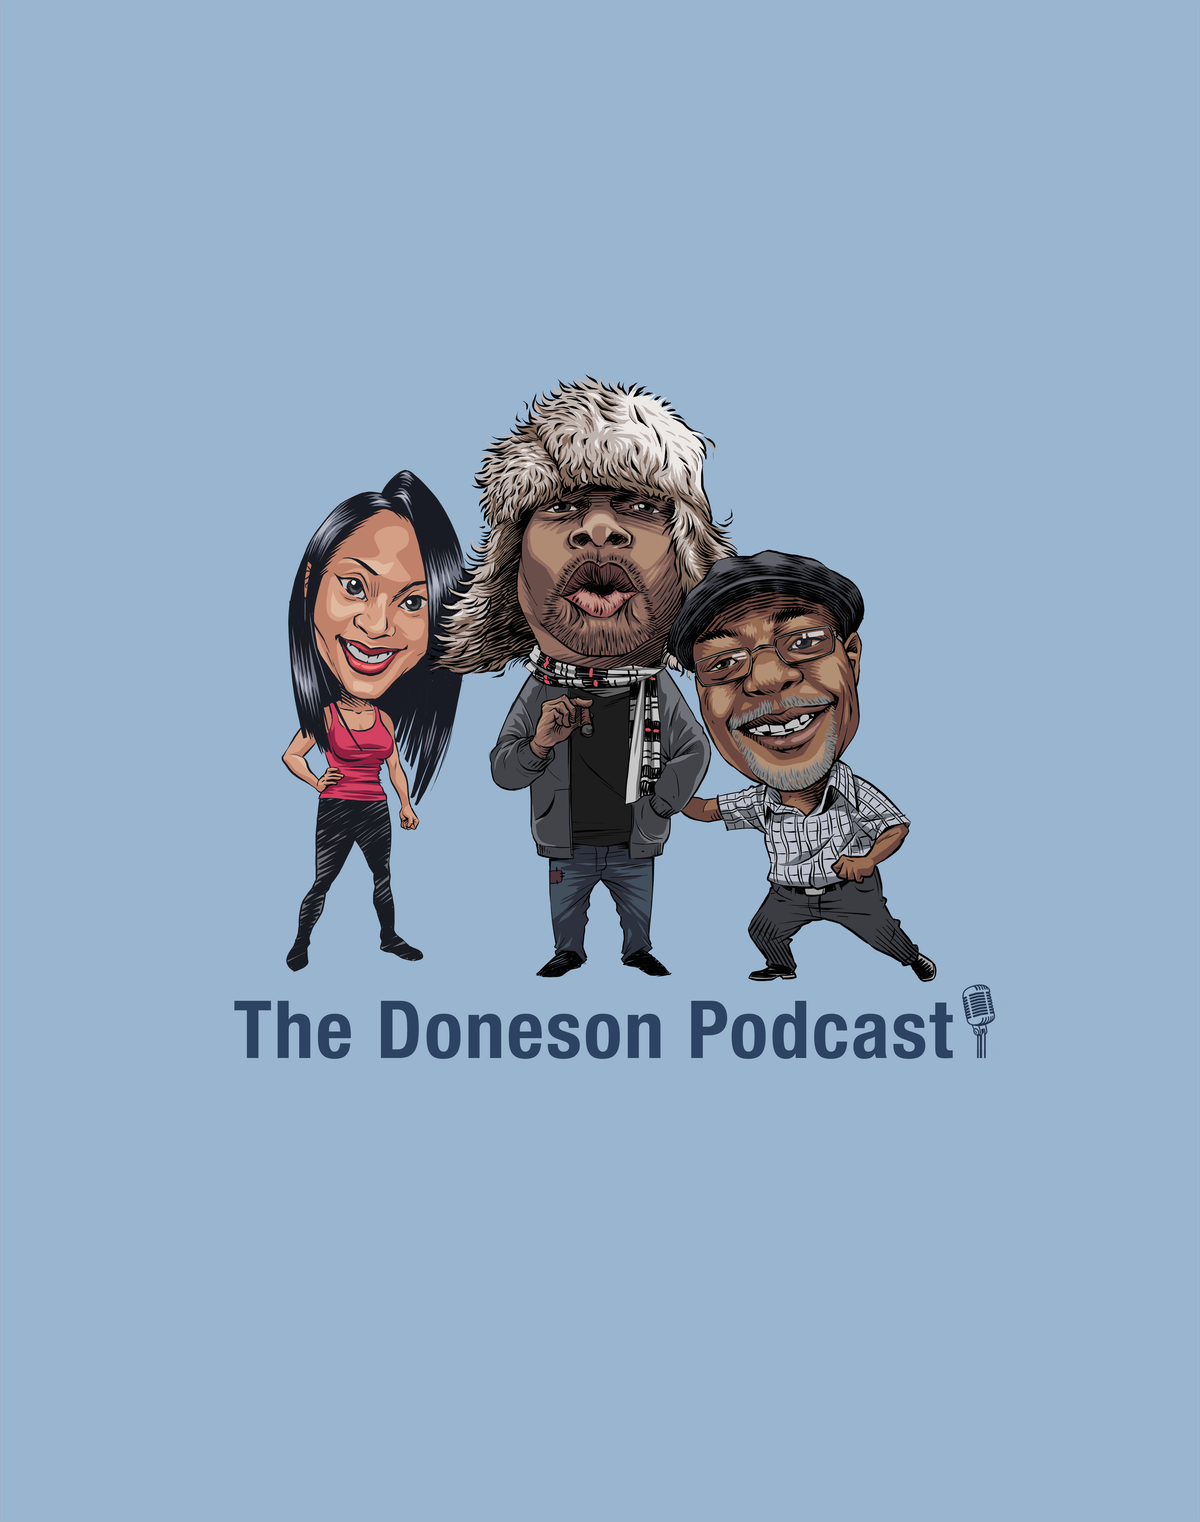 The Doneson Podcast